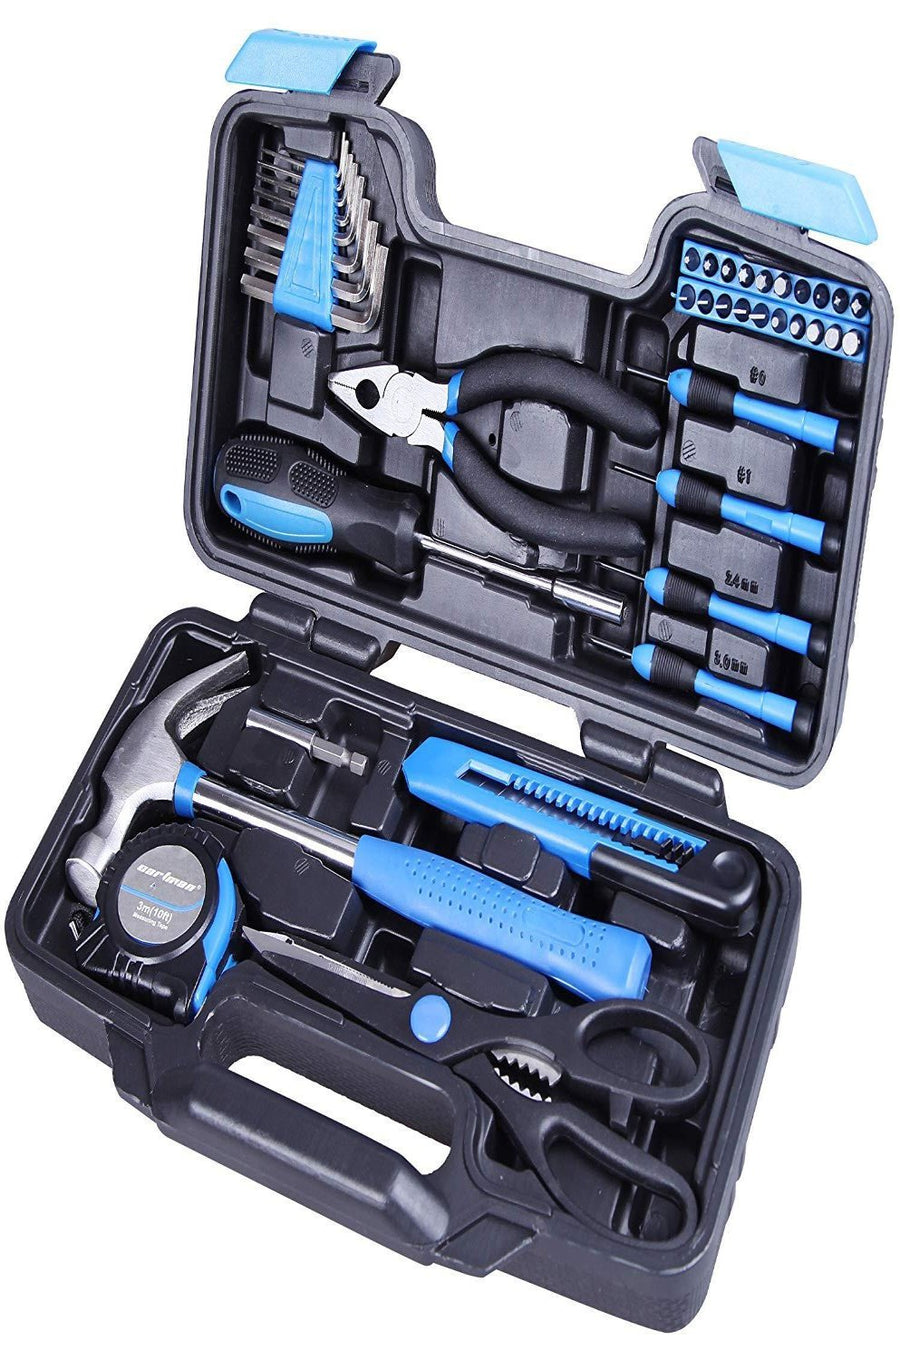 39-Piece Household Cutting Plier Plastic Storage Case Tool Set